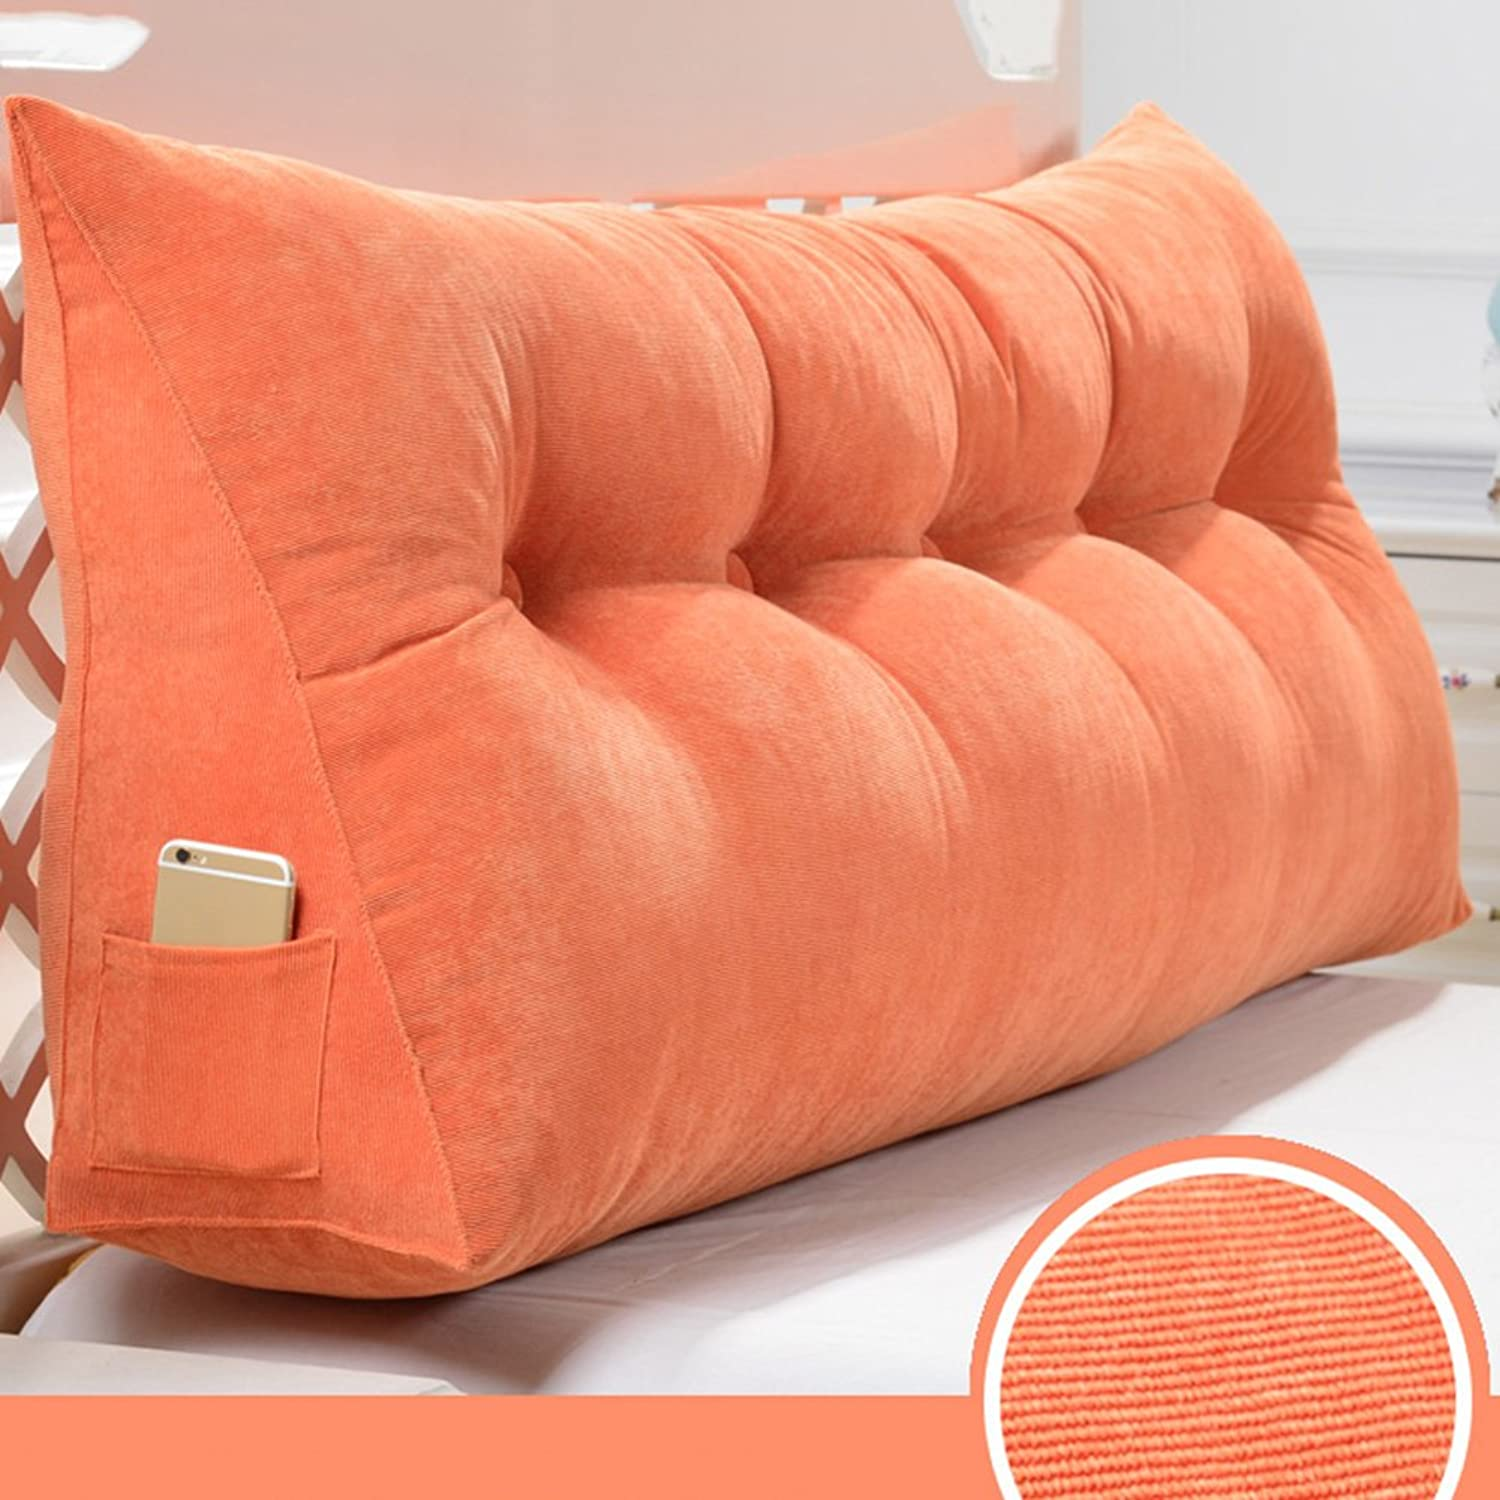 RFJJAL Headboard Cushion Covers for Double Bed King Size Cloth Art Triangular Three-Dimensional Large Back Sofa Lumbar Easy to Wash, 5 colors, 9 Sizes (color   orange, Size   90×50×20cm)